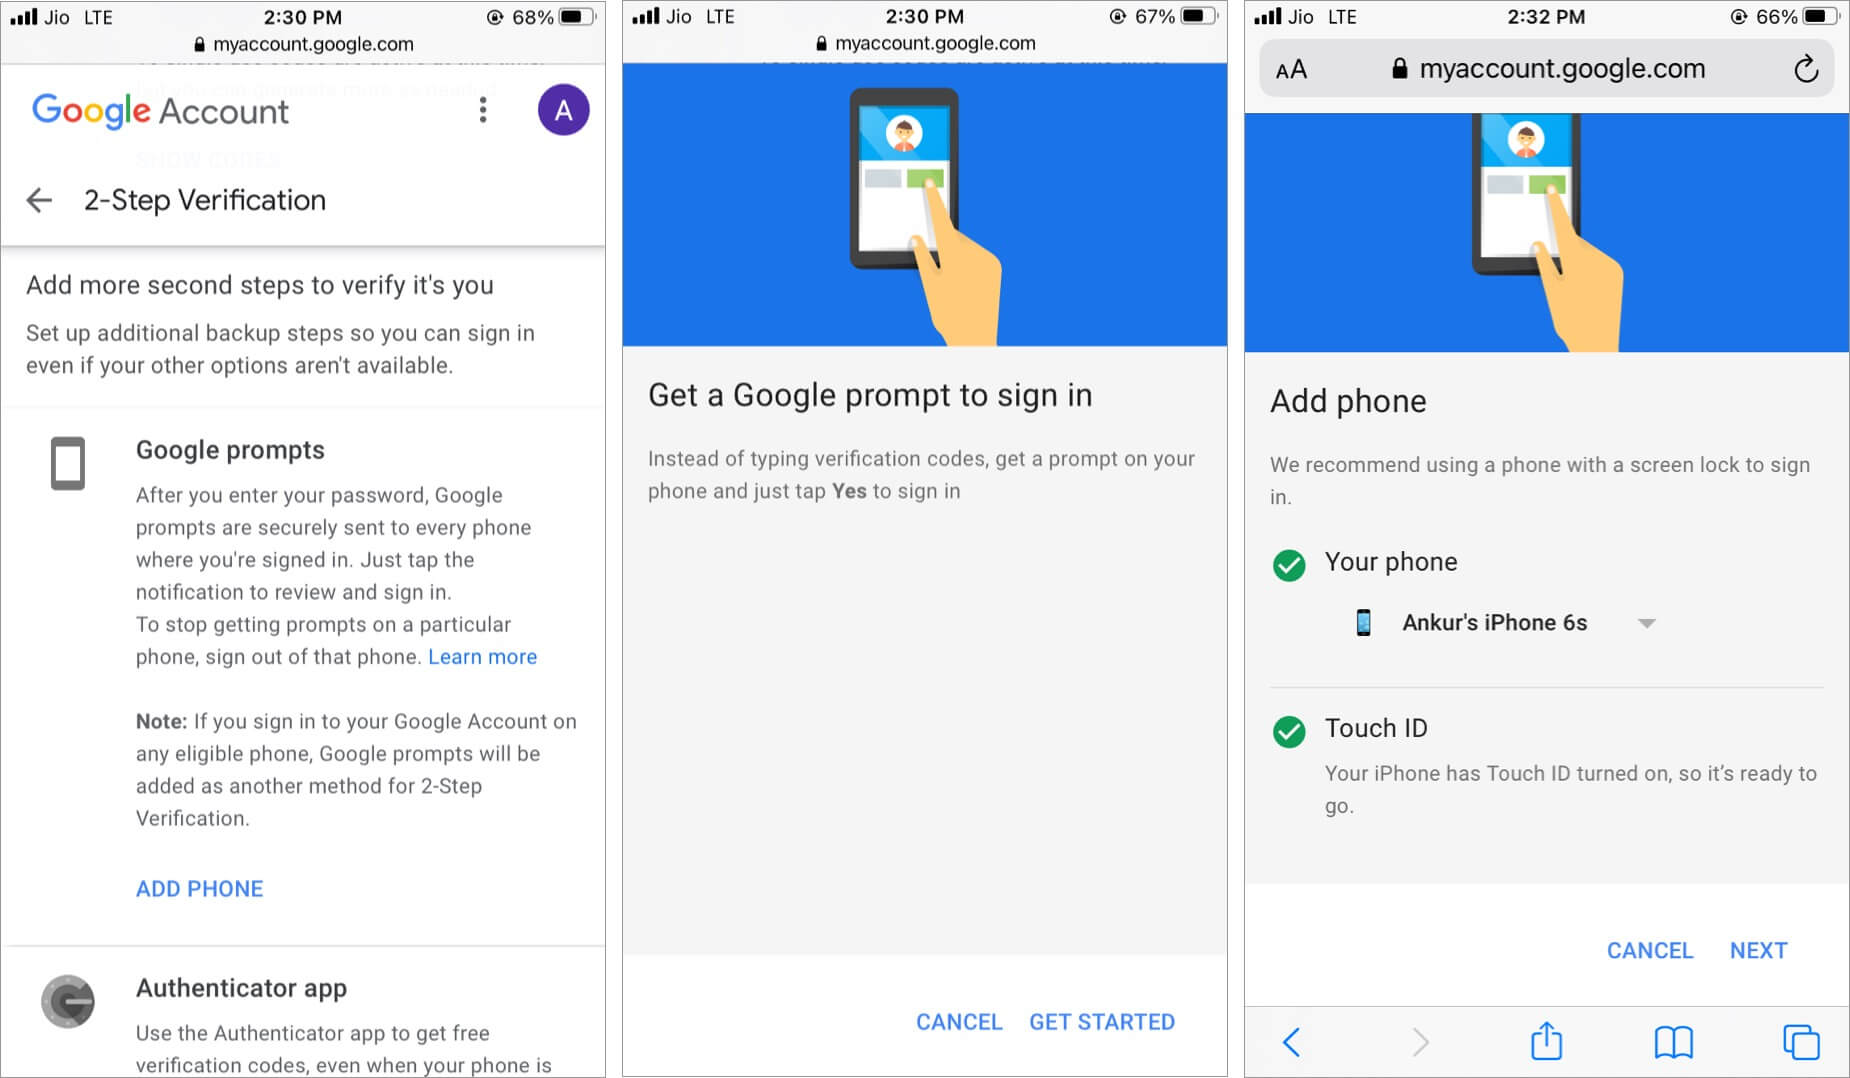 Add Phone to get Google prompts in Gmail or Google app